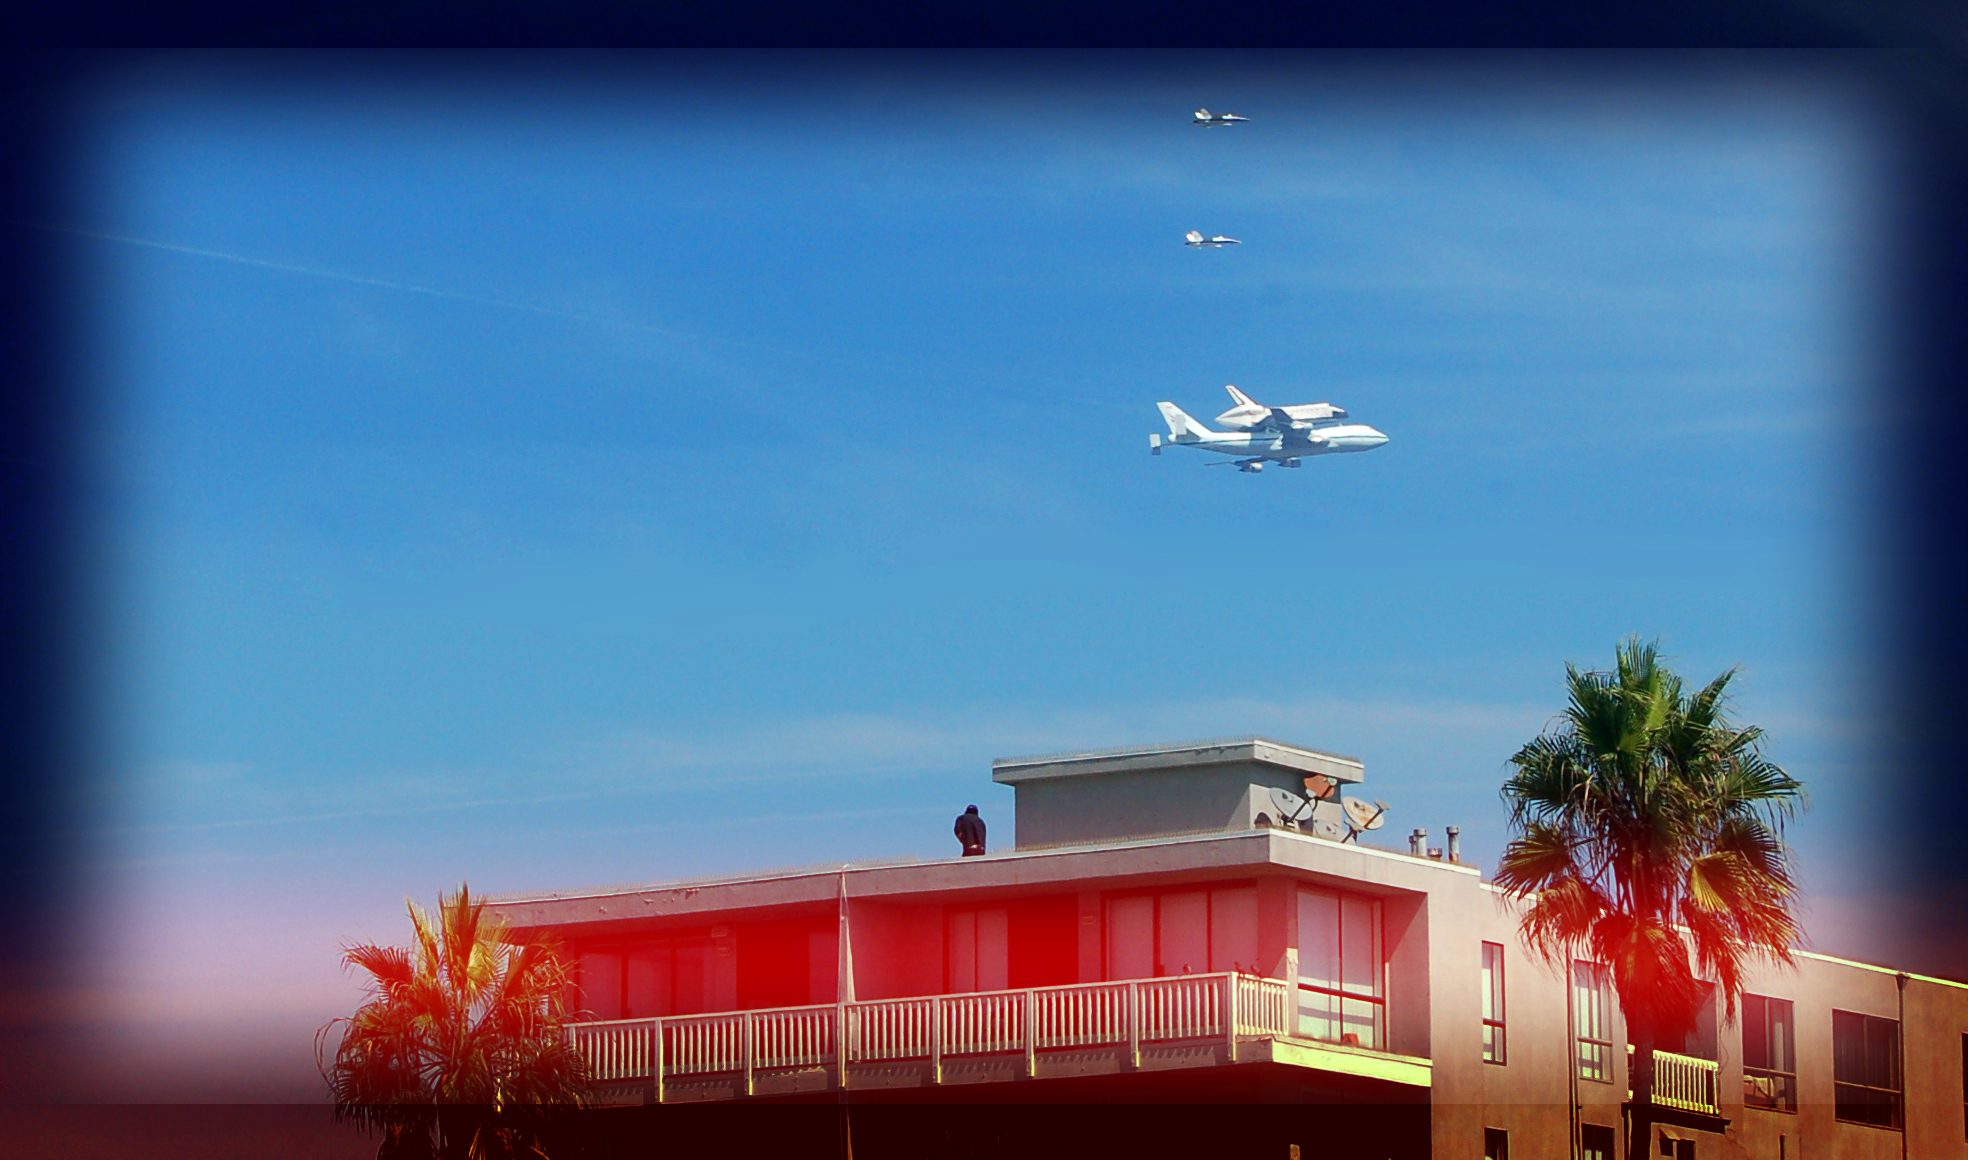 shuttle-endeavor-over-venice